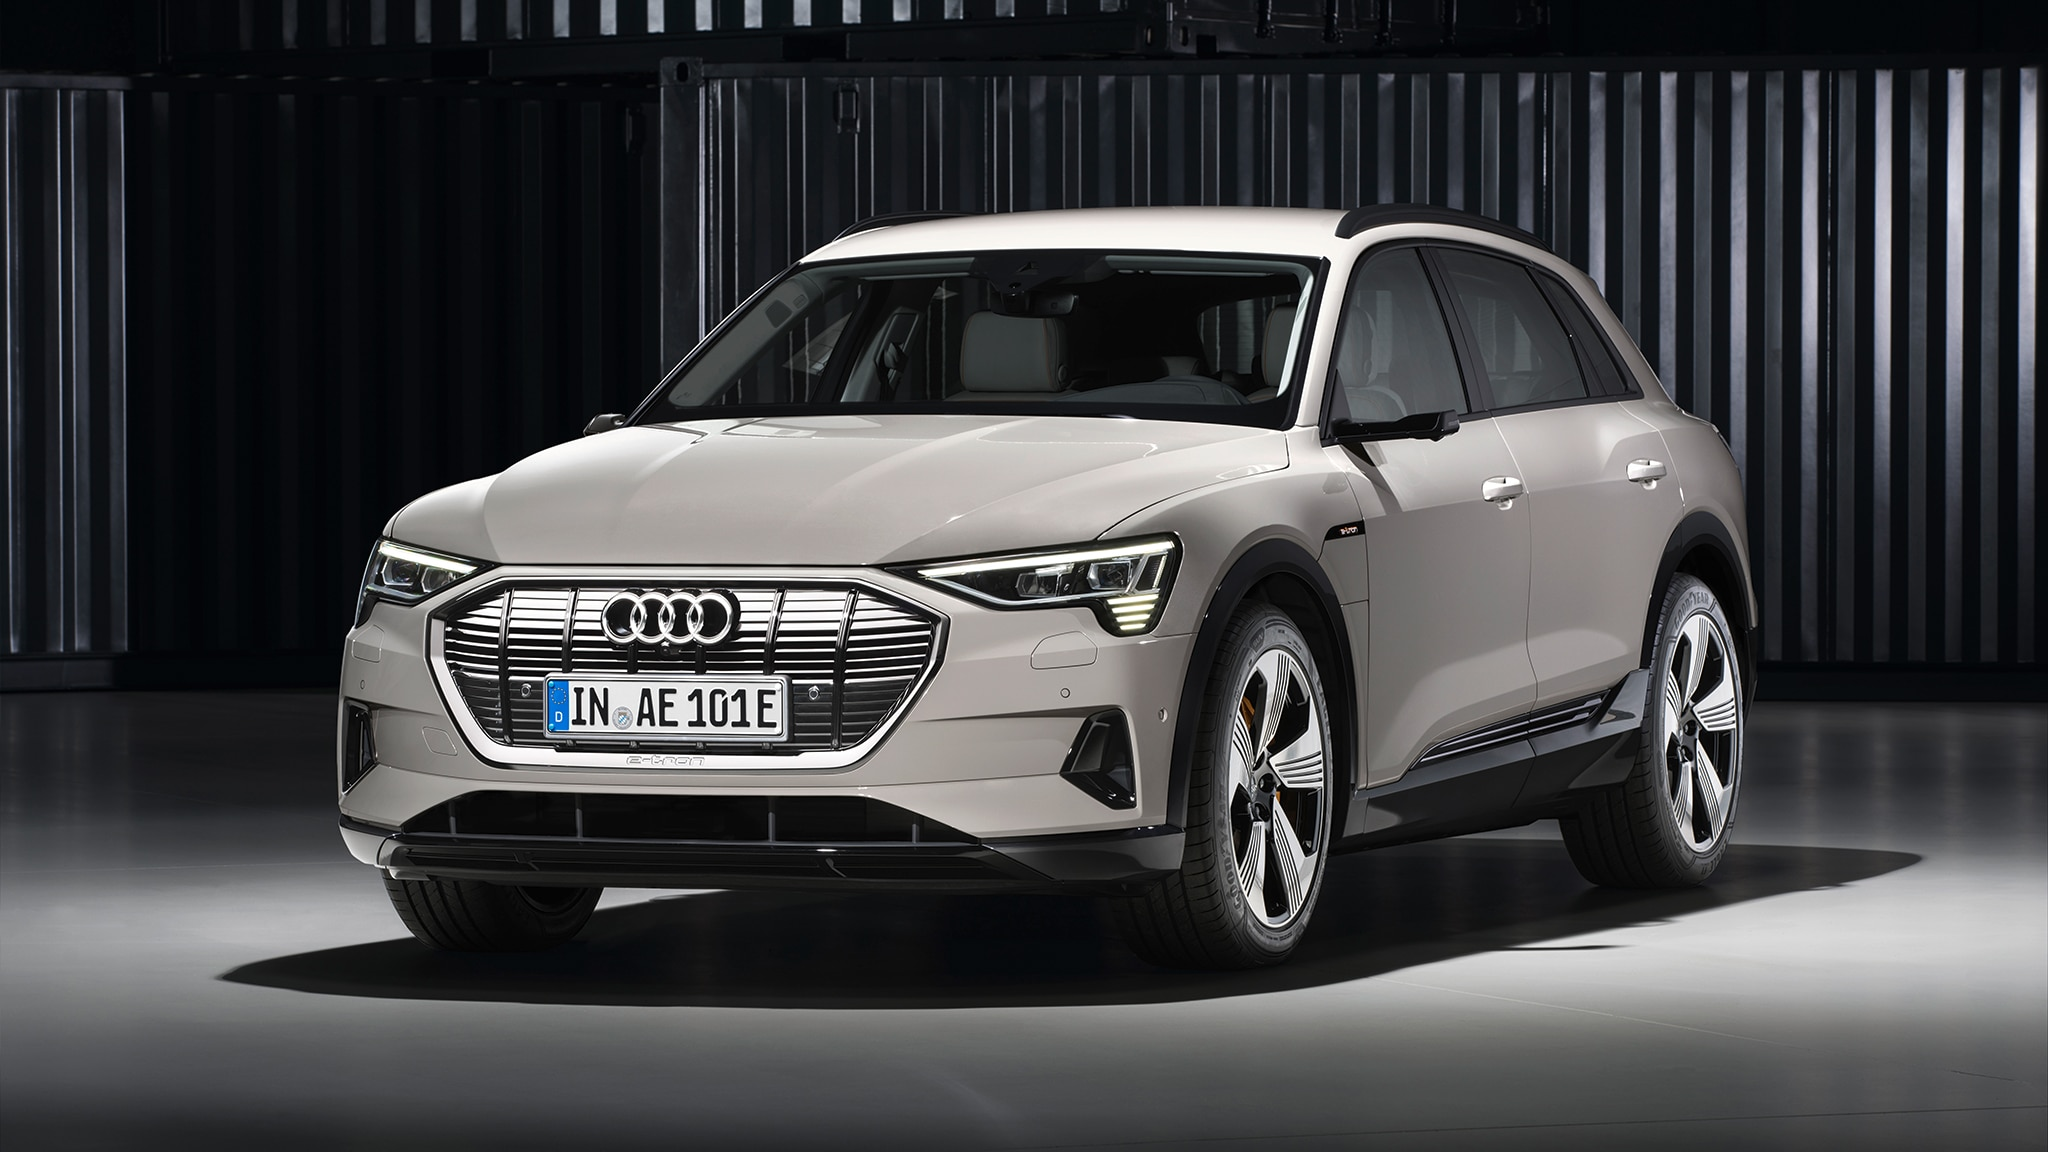 2019 audi e tron all electric suv officially revealed. Black Bedroom Furniture Sets. Home Design Ideas